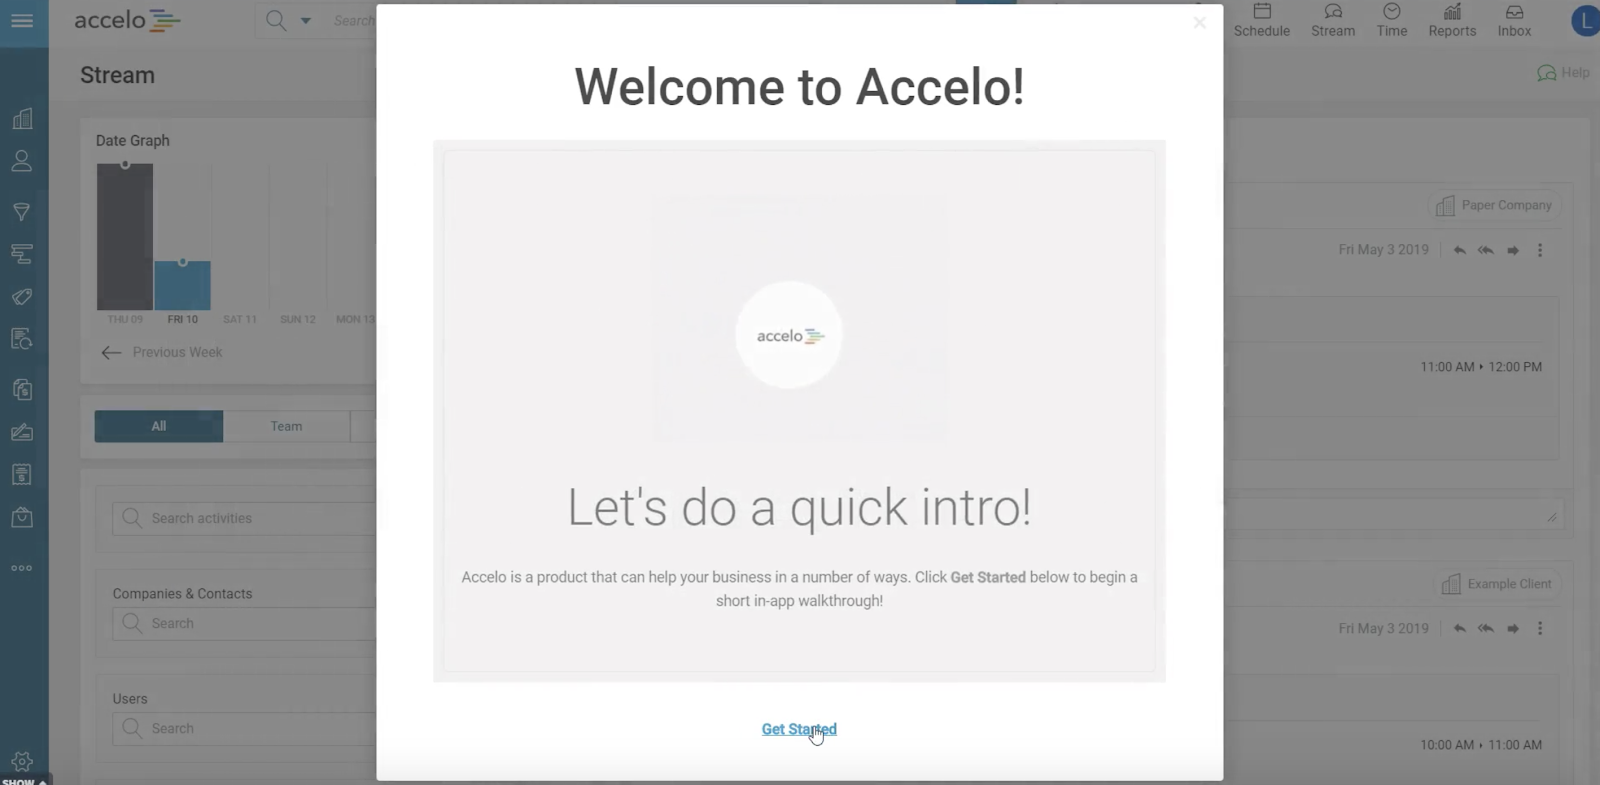 This is a screenshot image of a welcome modal dialog window targeted to new users